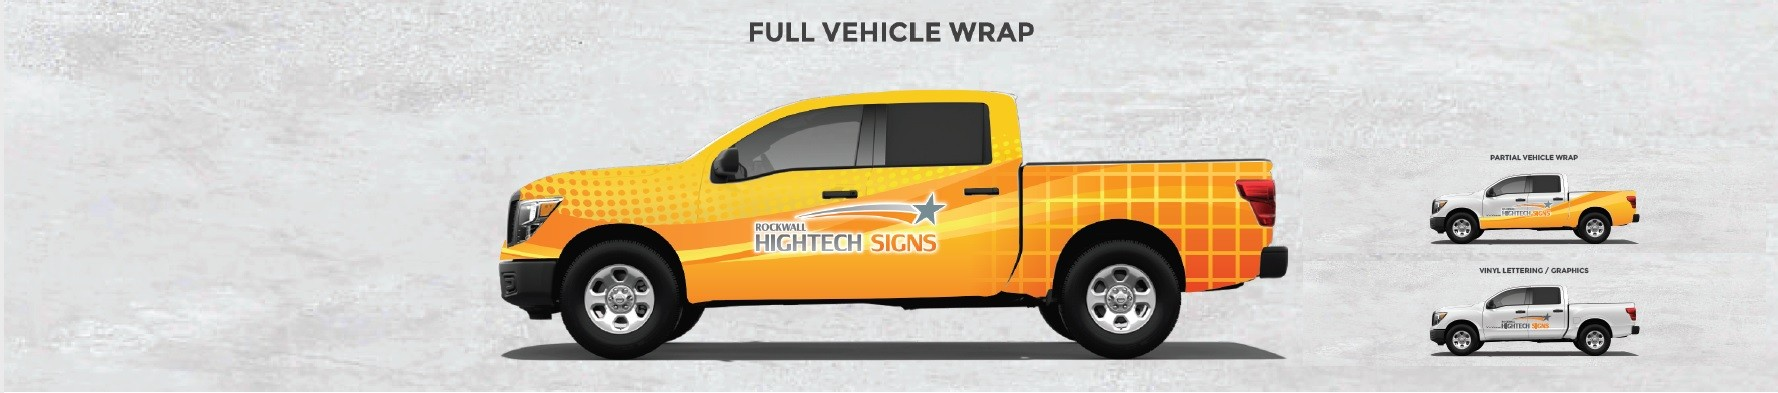 Full Vehicle Wrap Header